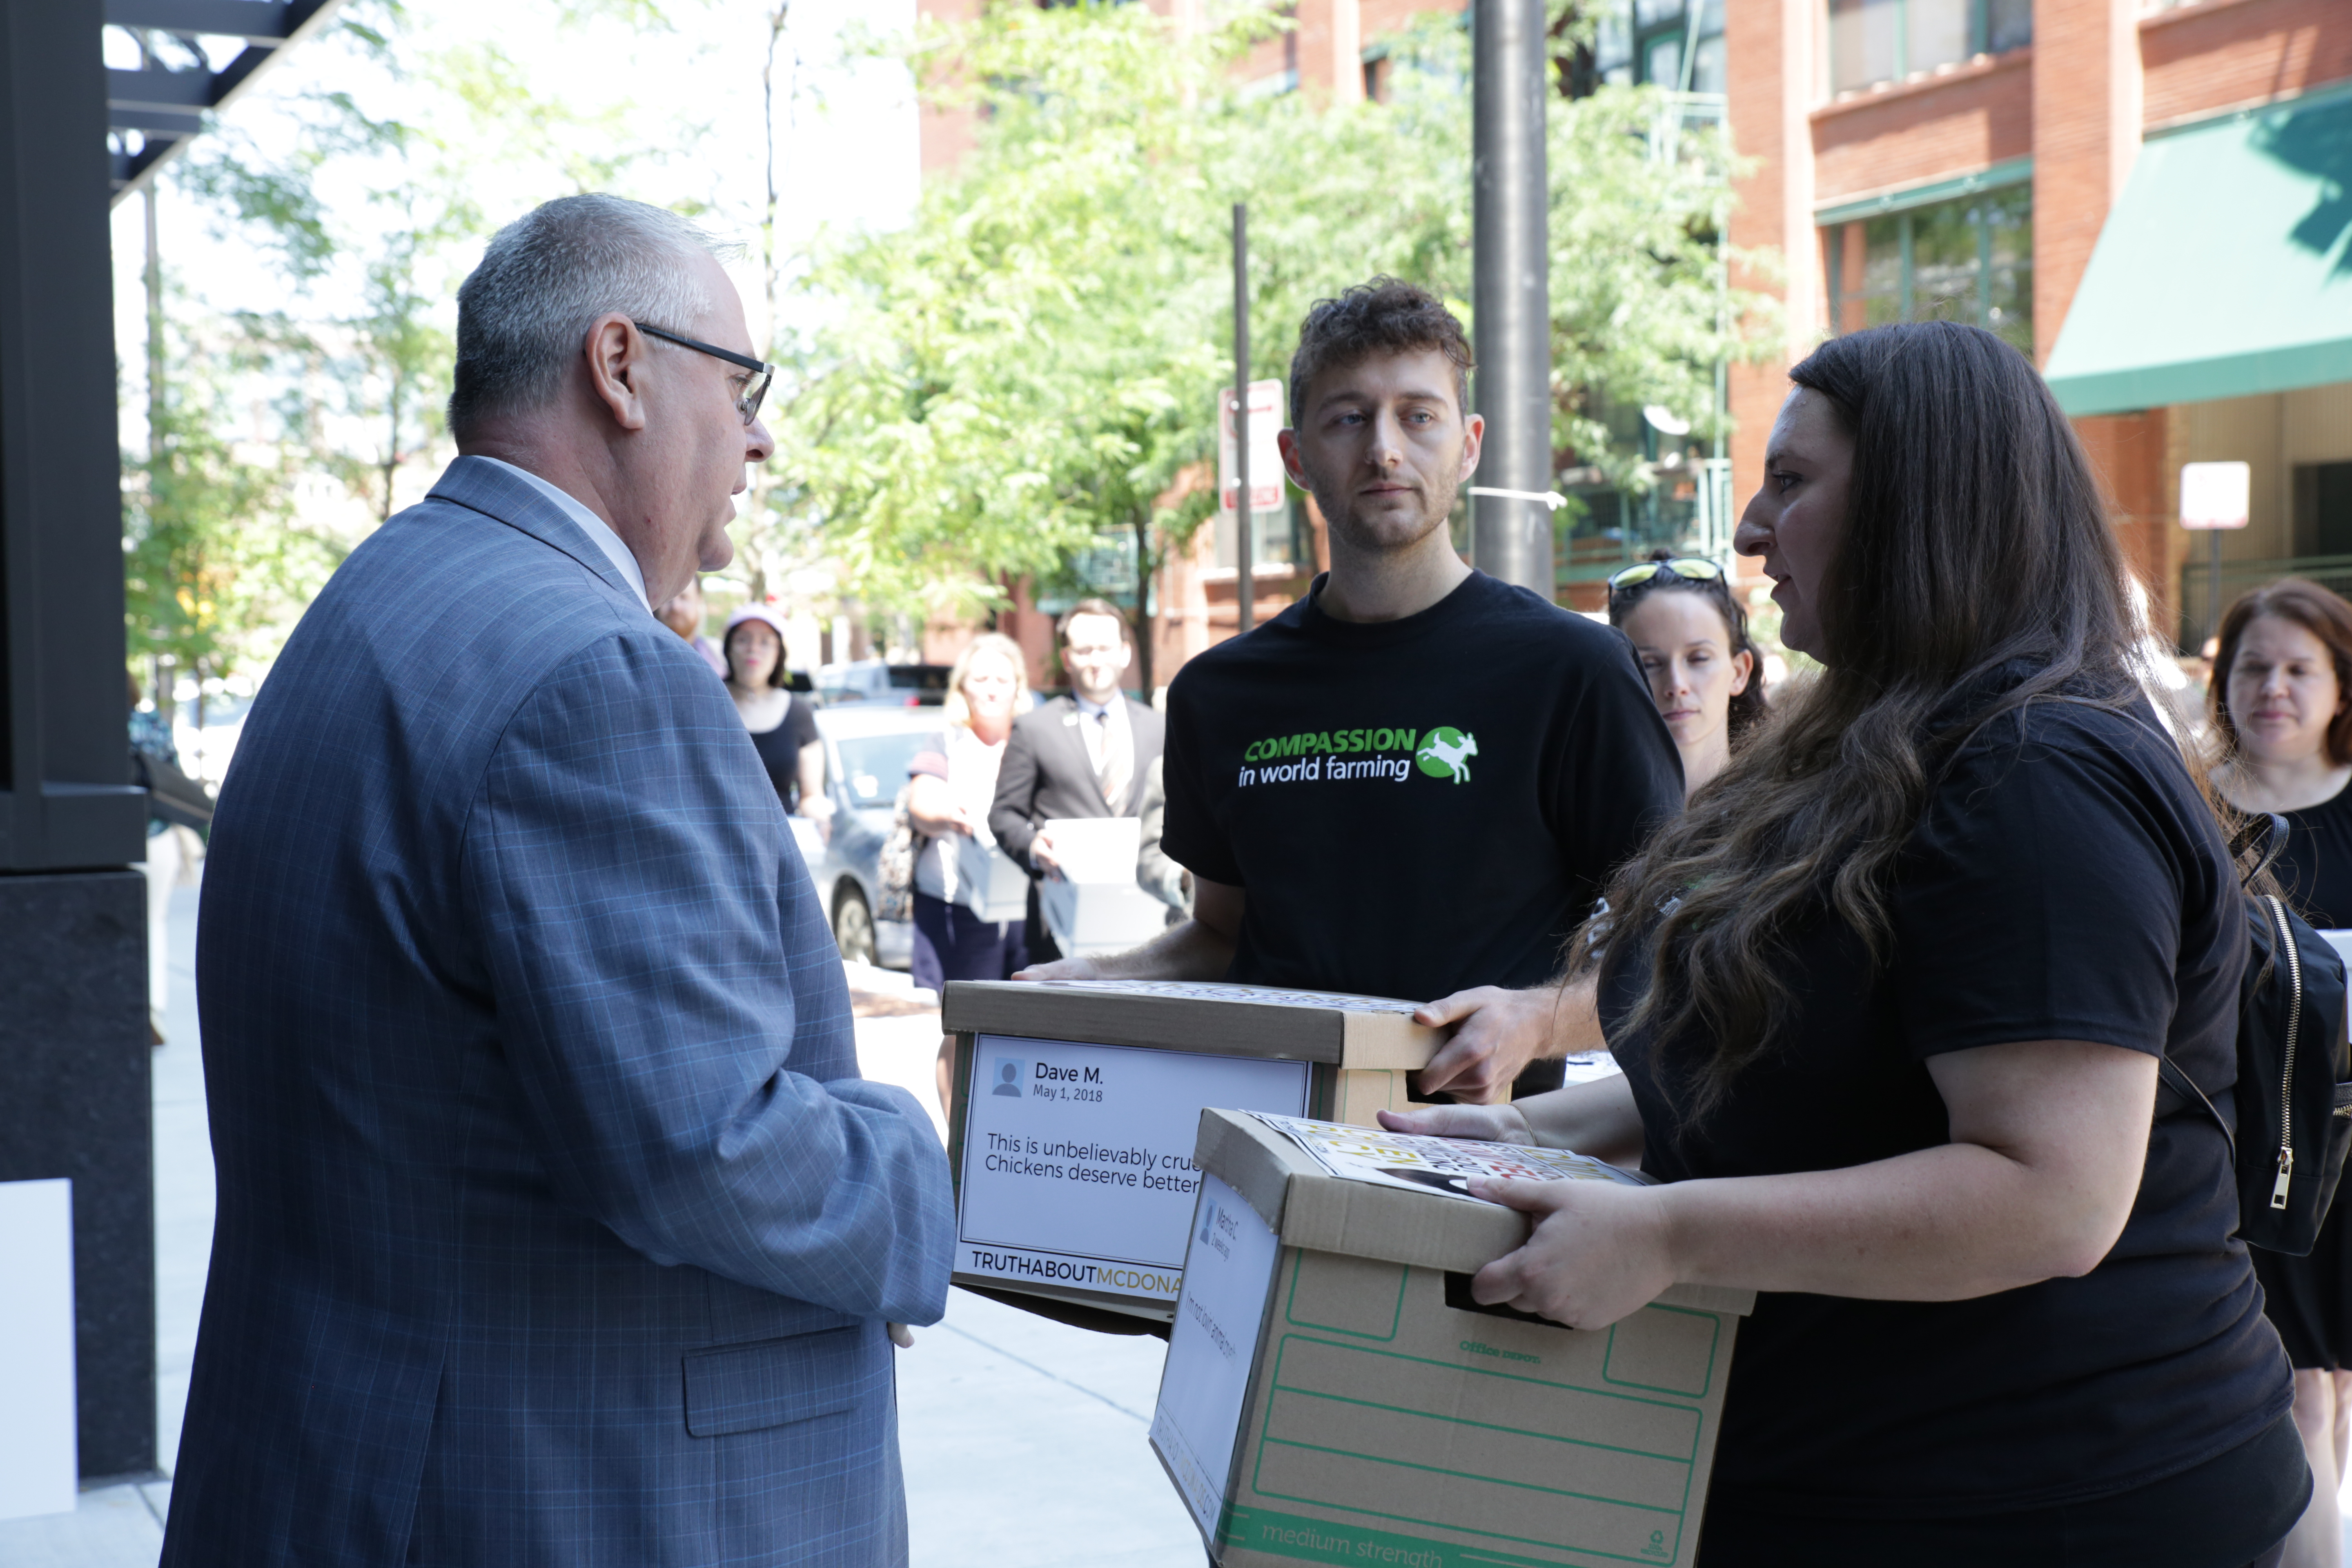 MAPP student,Tyler Hazard is with Compassion in World Farming, and a few other animal protection groups came together to hand-deliver more than 200,000 petition signatures asking McDonald's to do better for chickens.